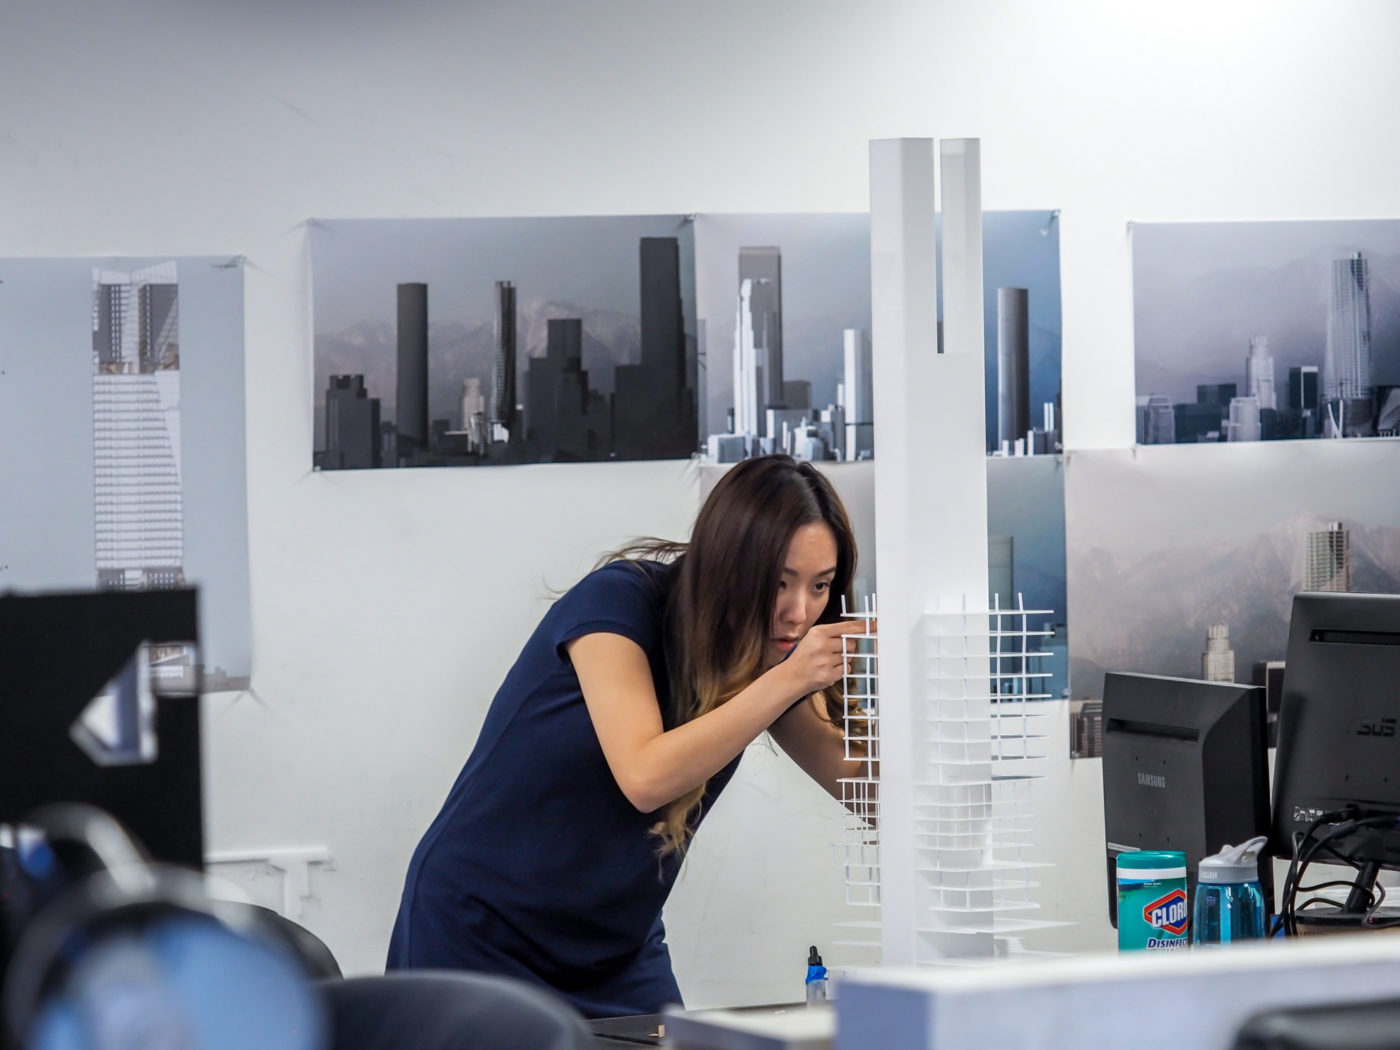 student constructs tall building model in white